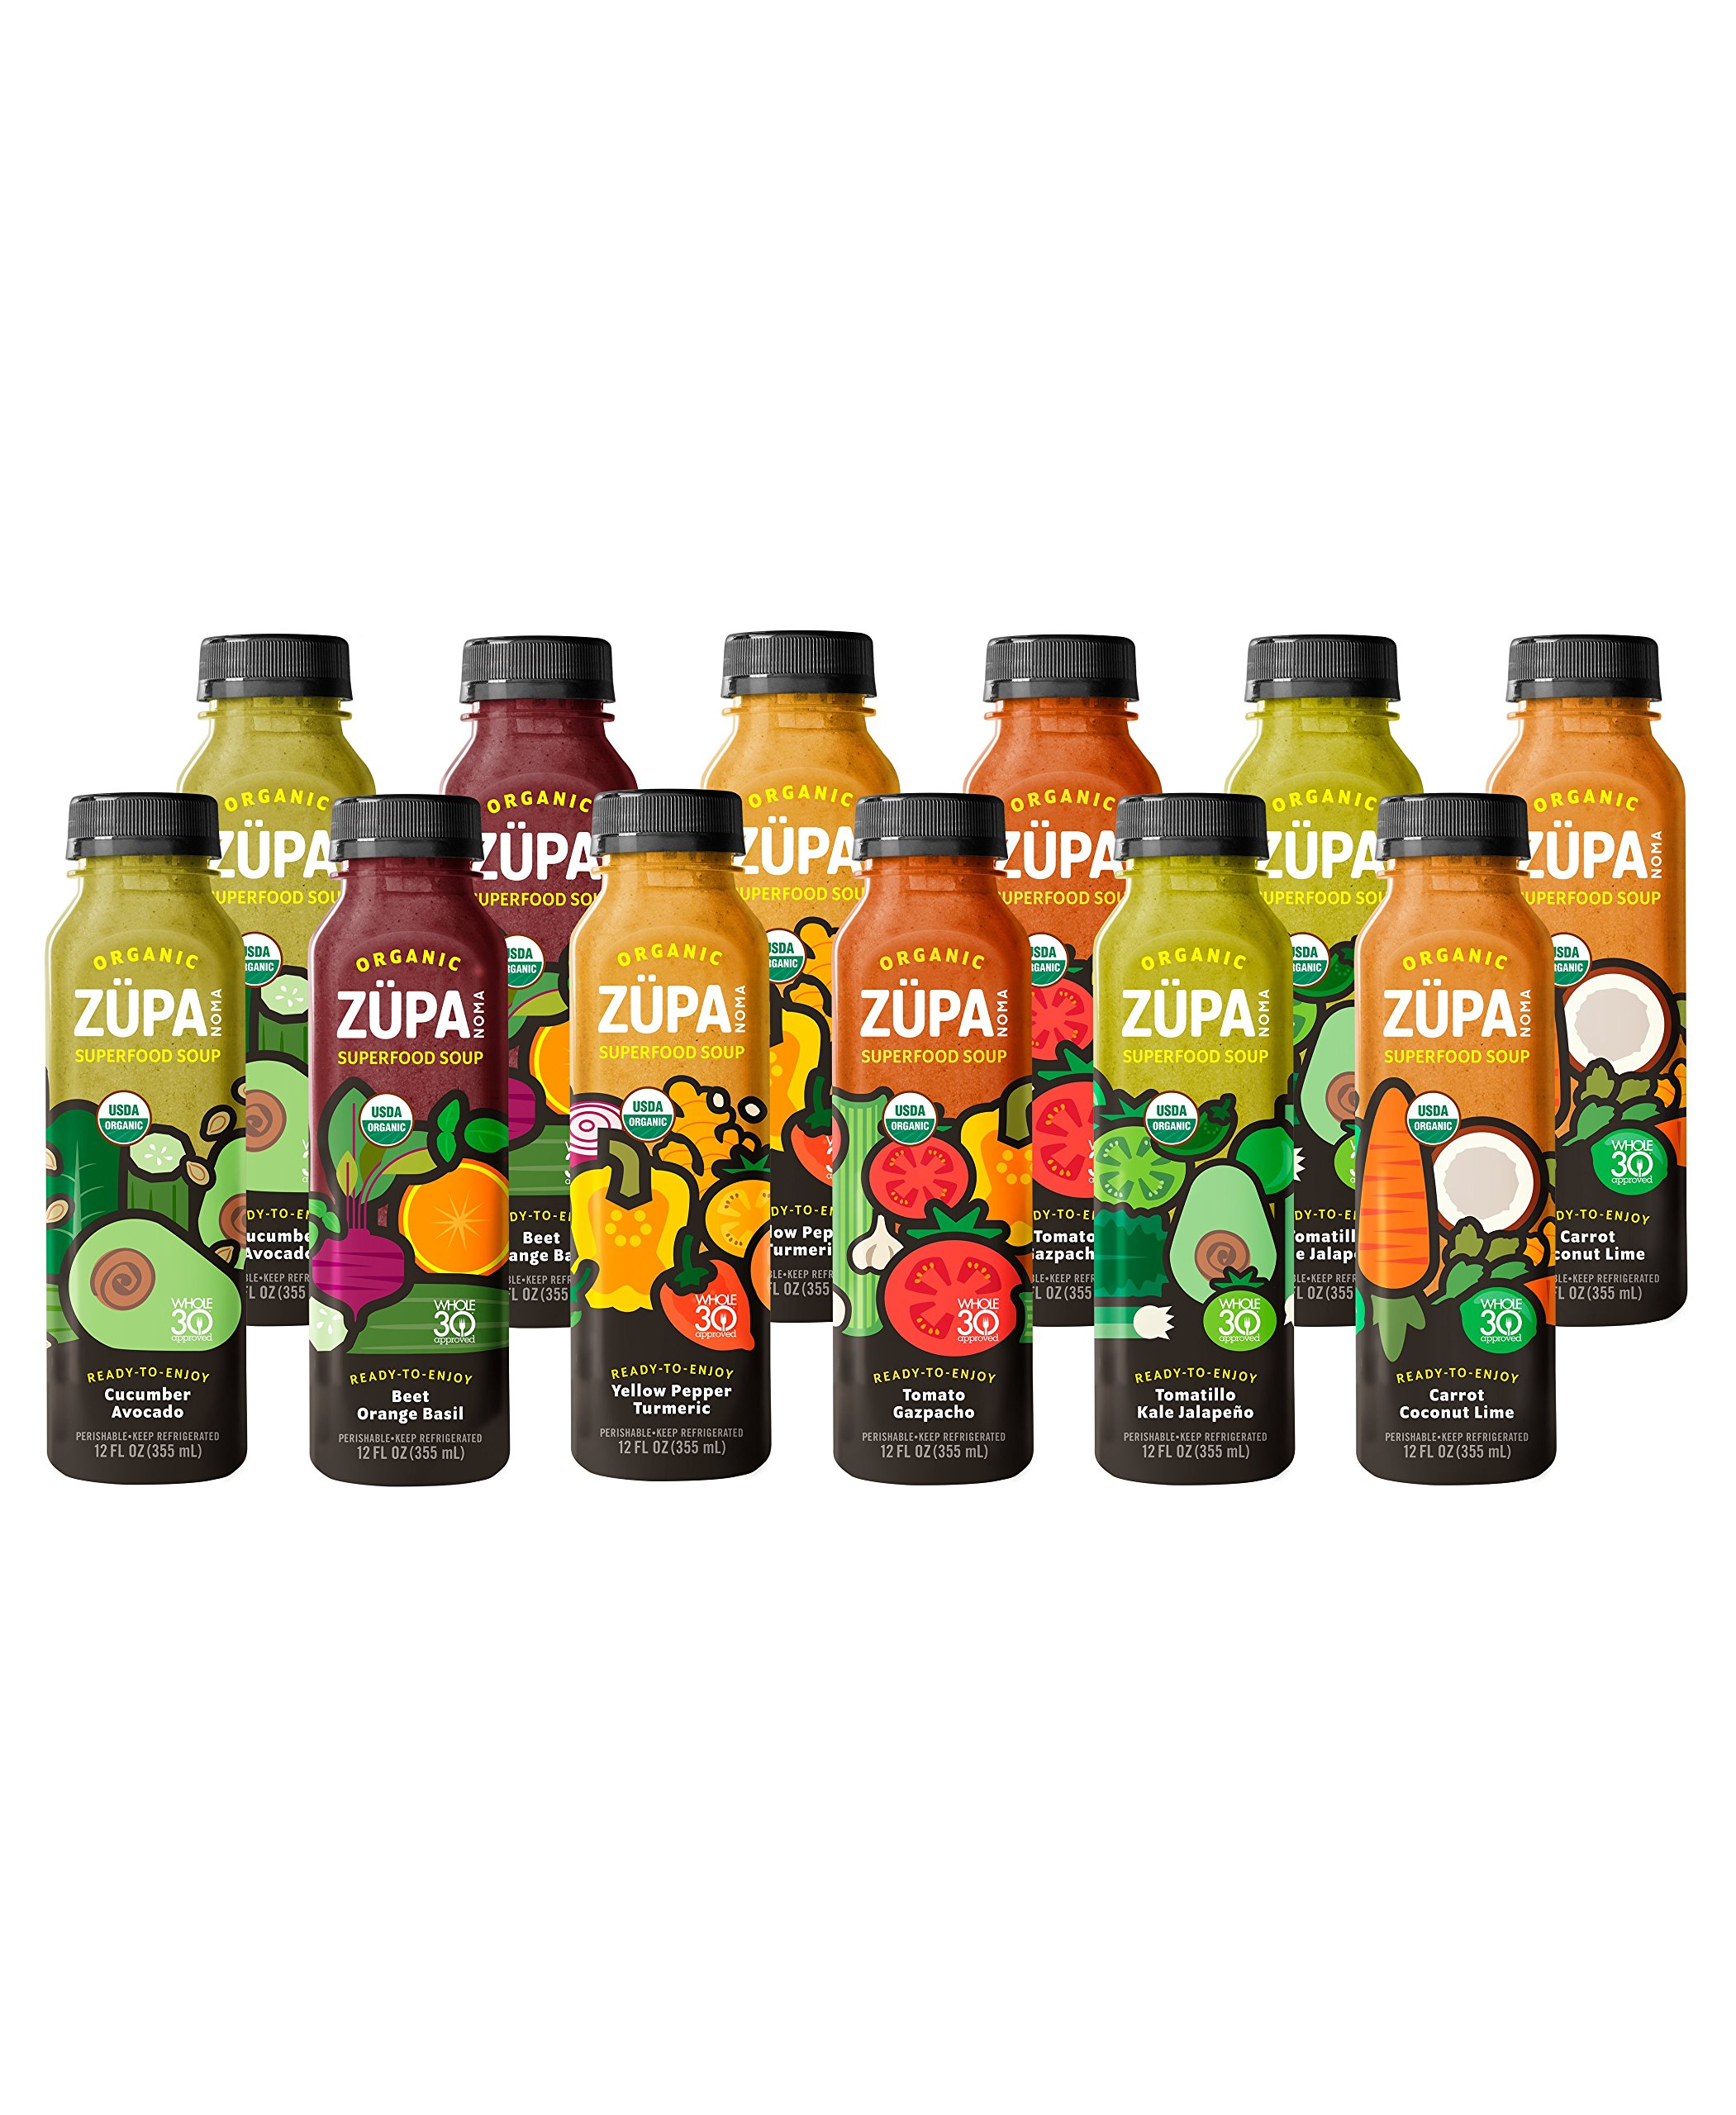 Organic Ready to Drink Whole30 Approved ZUPA NOMA Vegetable Superfood Soup Variety Pack (Vegan, Gluten-Free) by ZÜPA NOMA